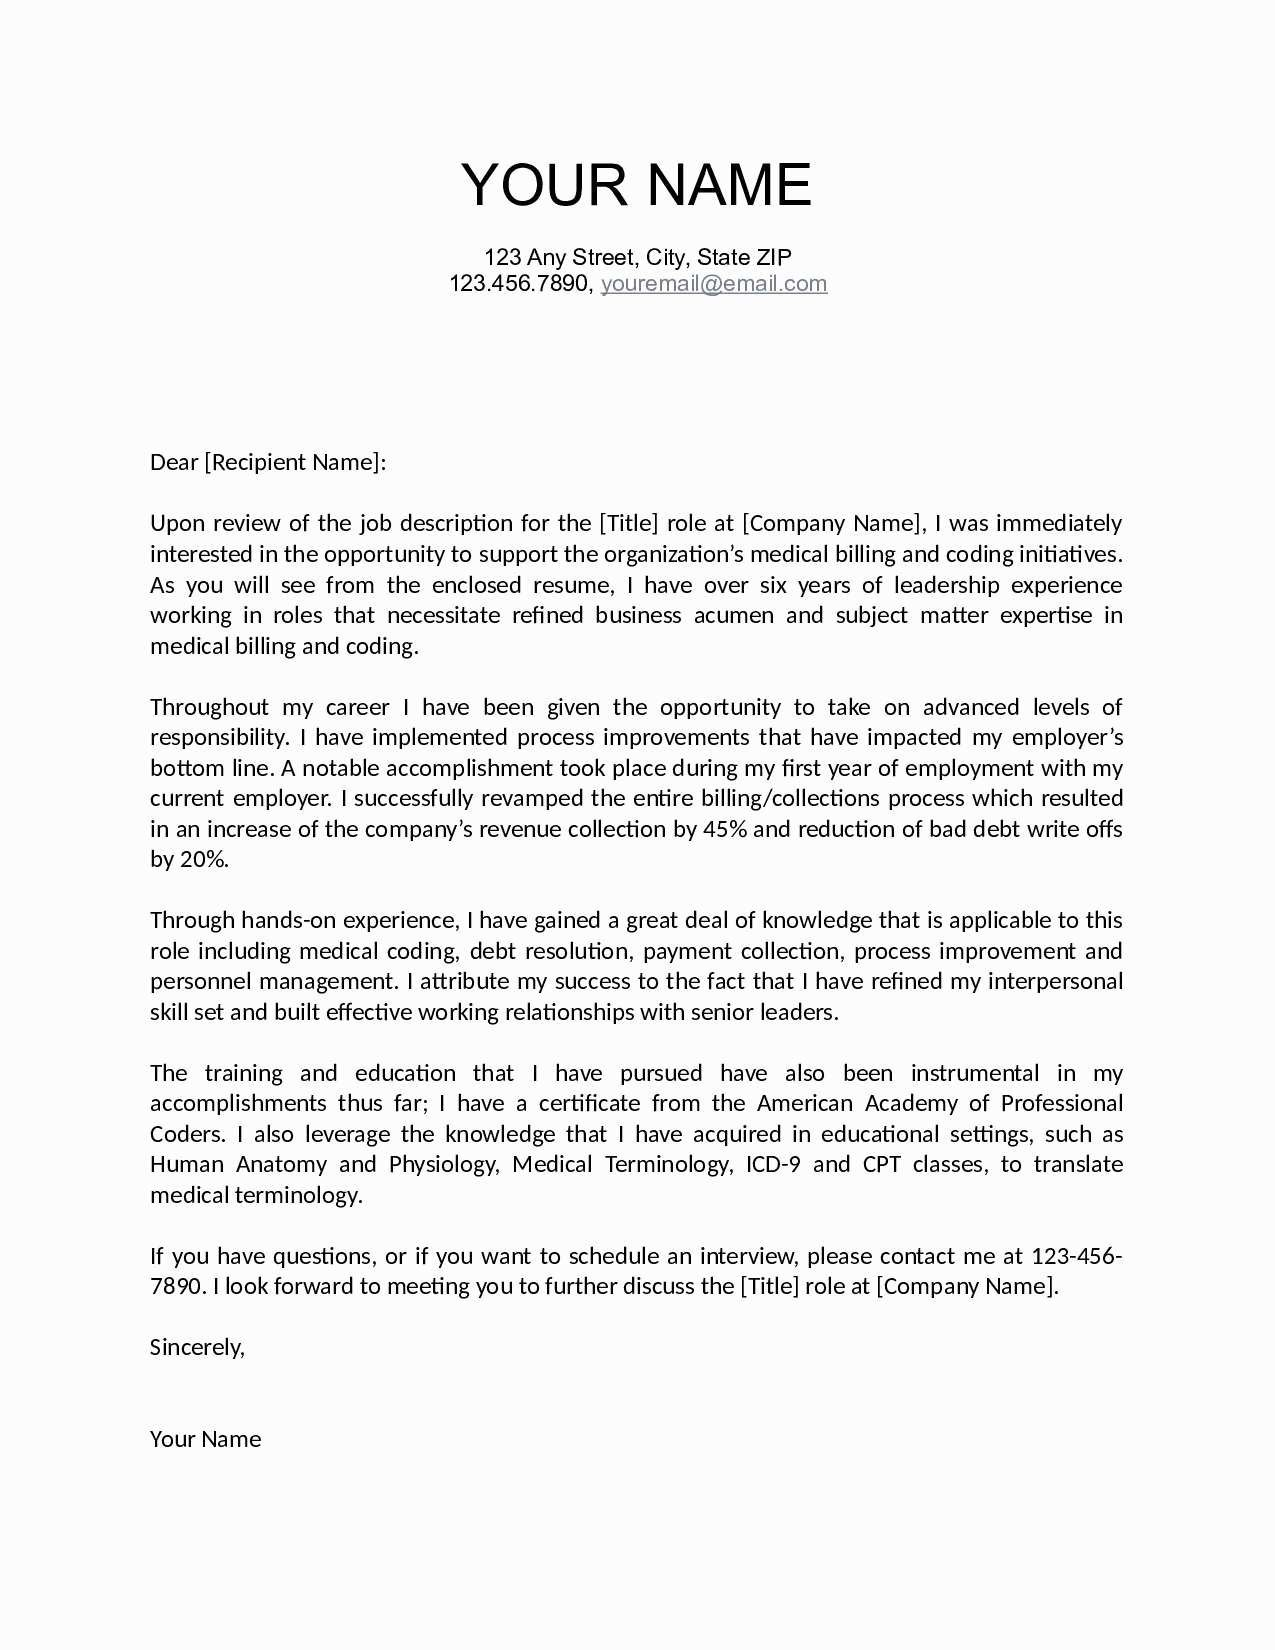 Pull Letter Template - What to Write A Covering Letter for A Job